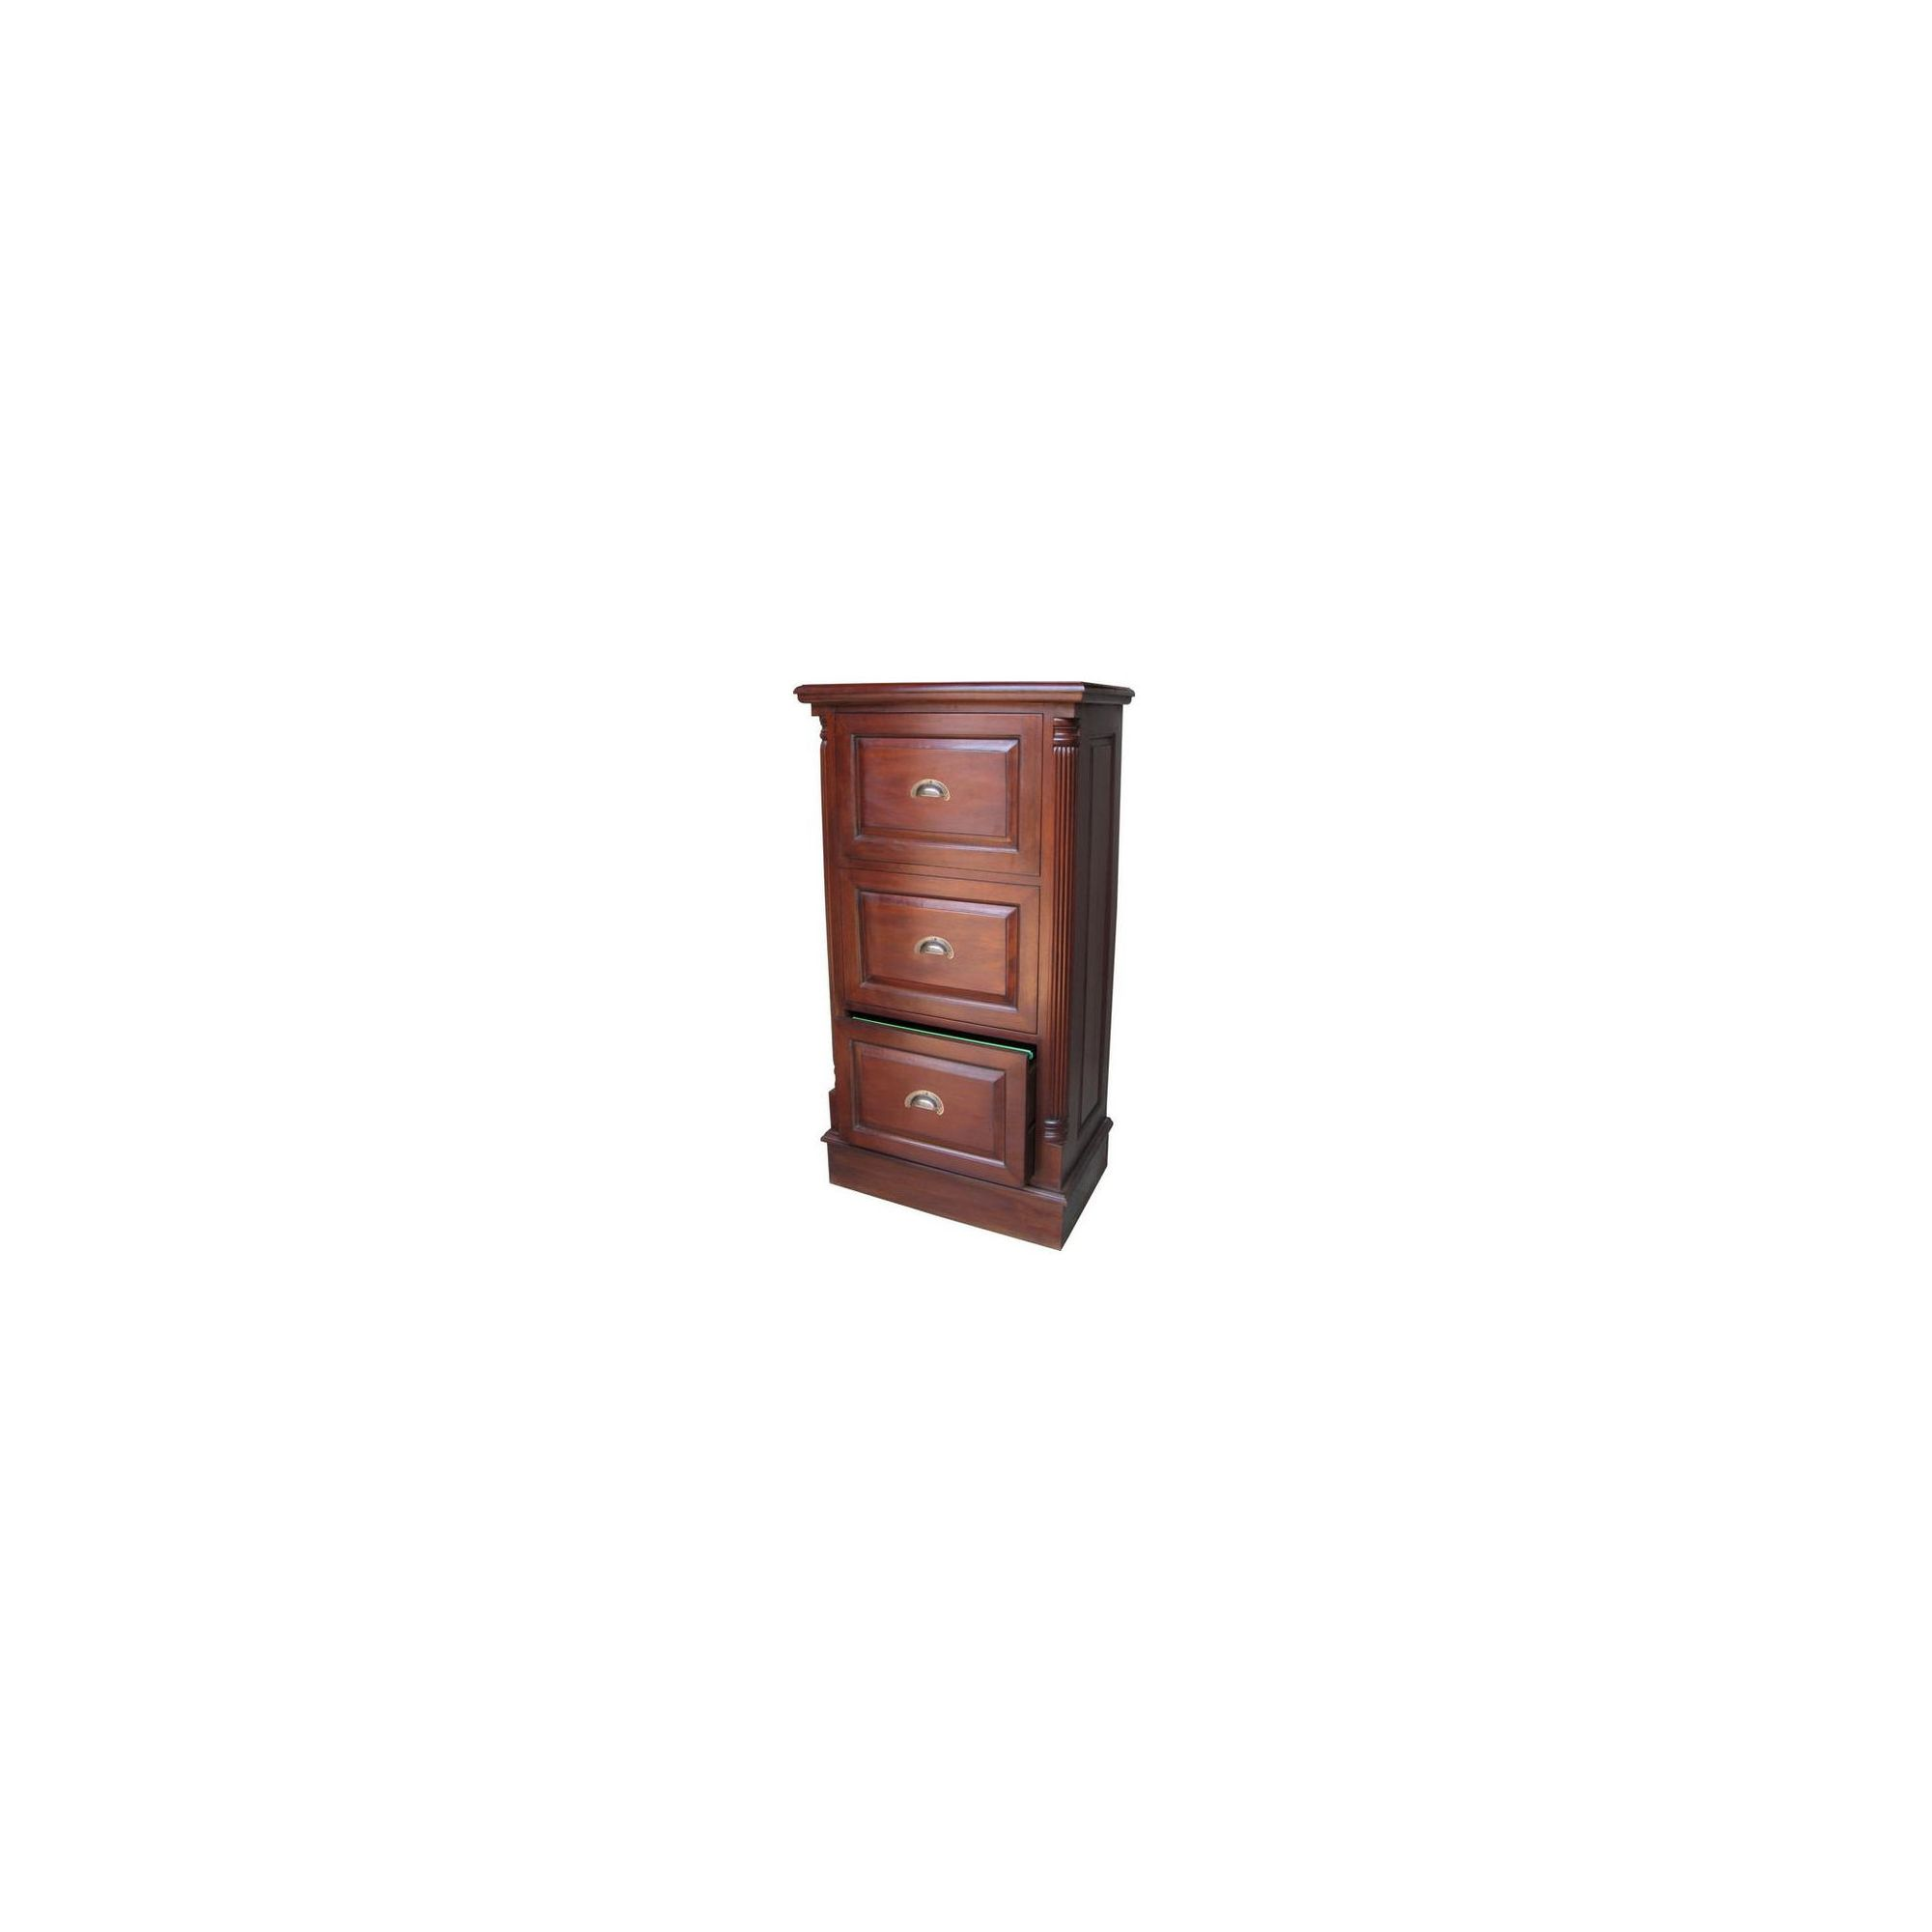 Lock stock and barrel Mahogany 3 Drawer Filing Cabinet with Antique Handles in Mahogany at Tesco Direct